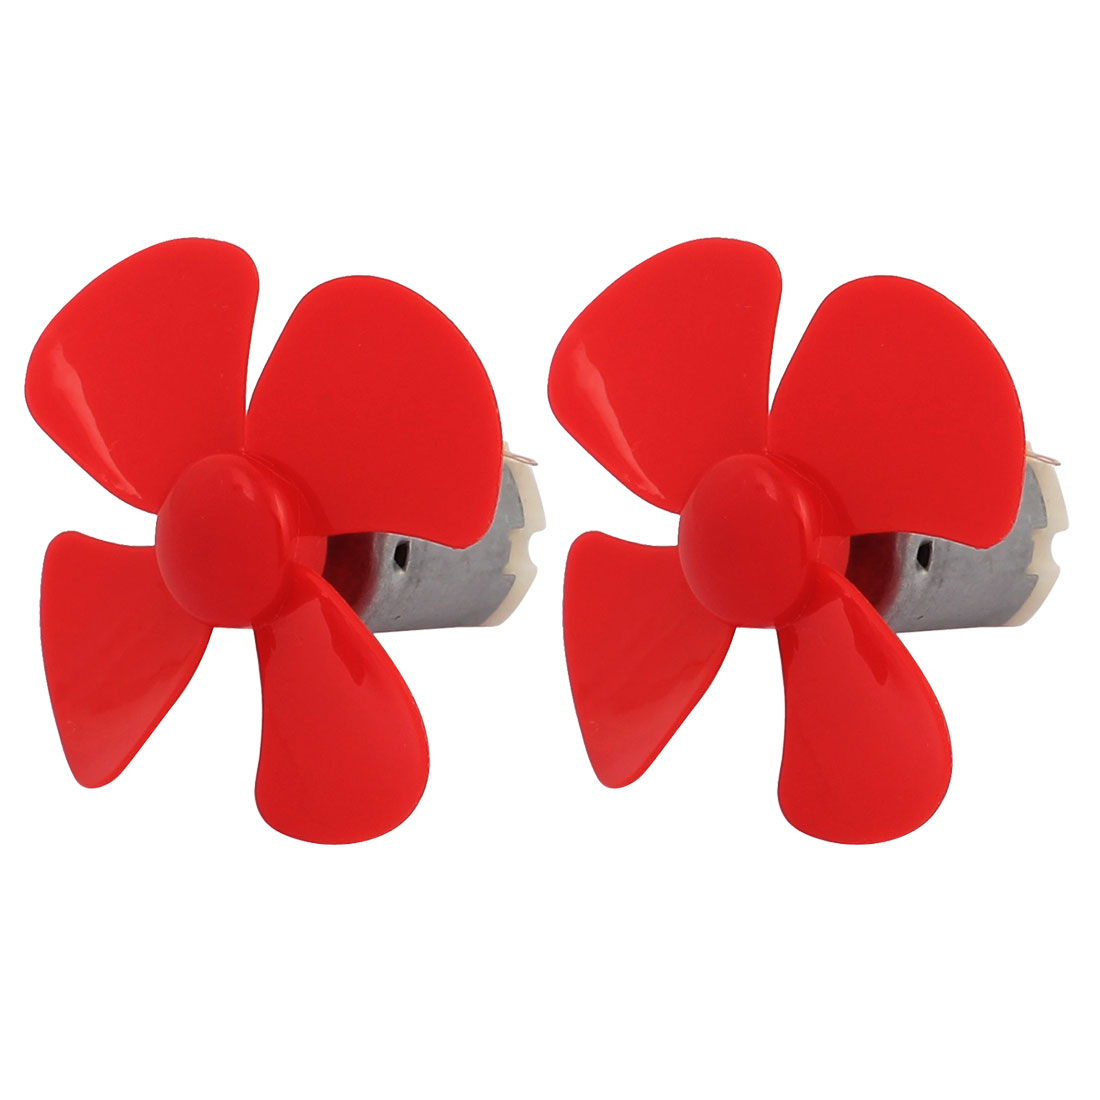 2Pcs DC12V 0.04A 14000RPM Aircraft Model Motor 4-vane Propeller 56mmx2mm - image 5 of 5